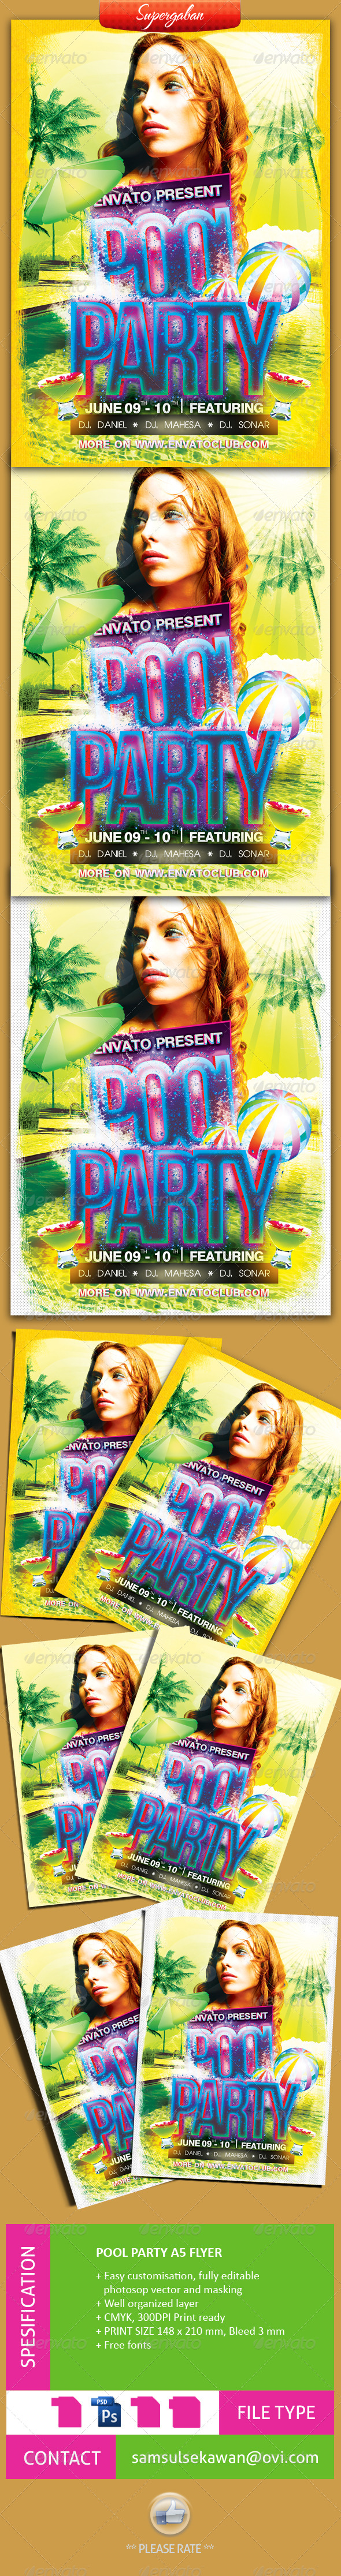 Pool Party A5 Flyer - Clubs & Parties Events